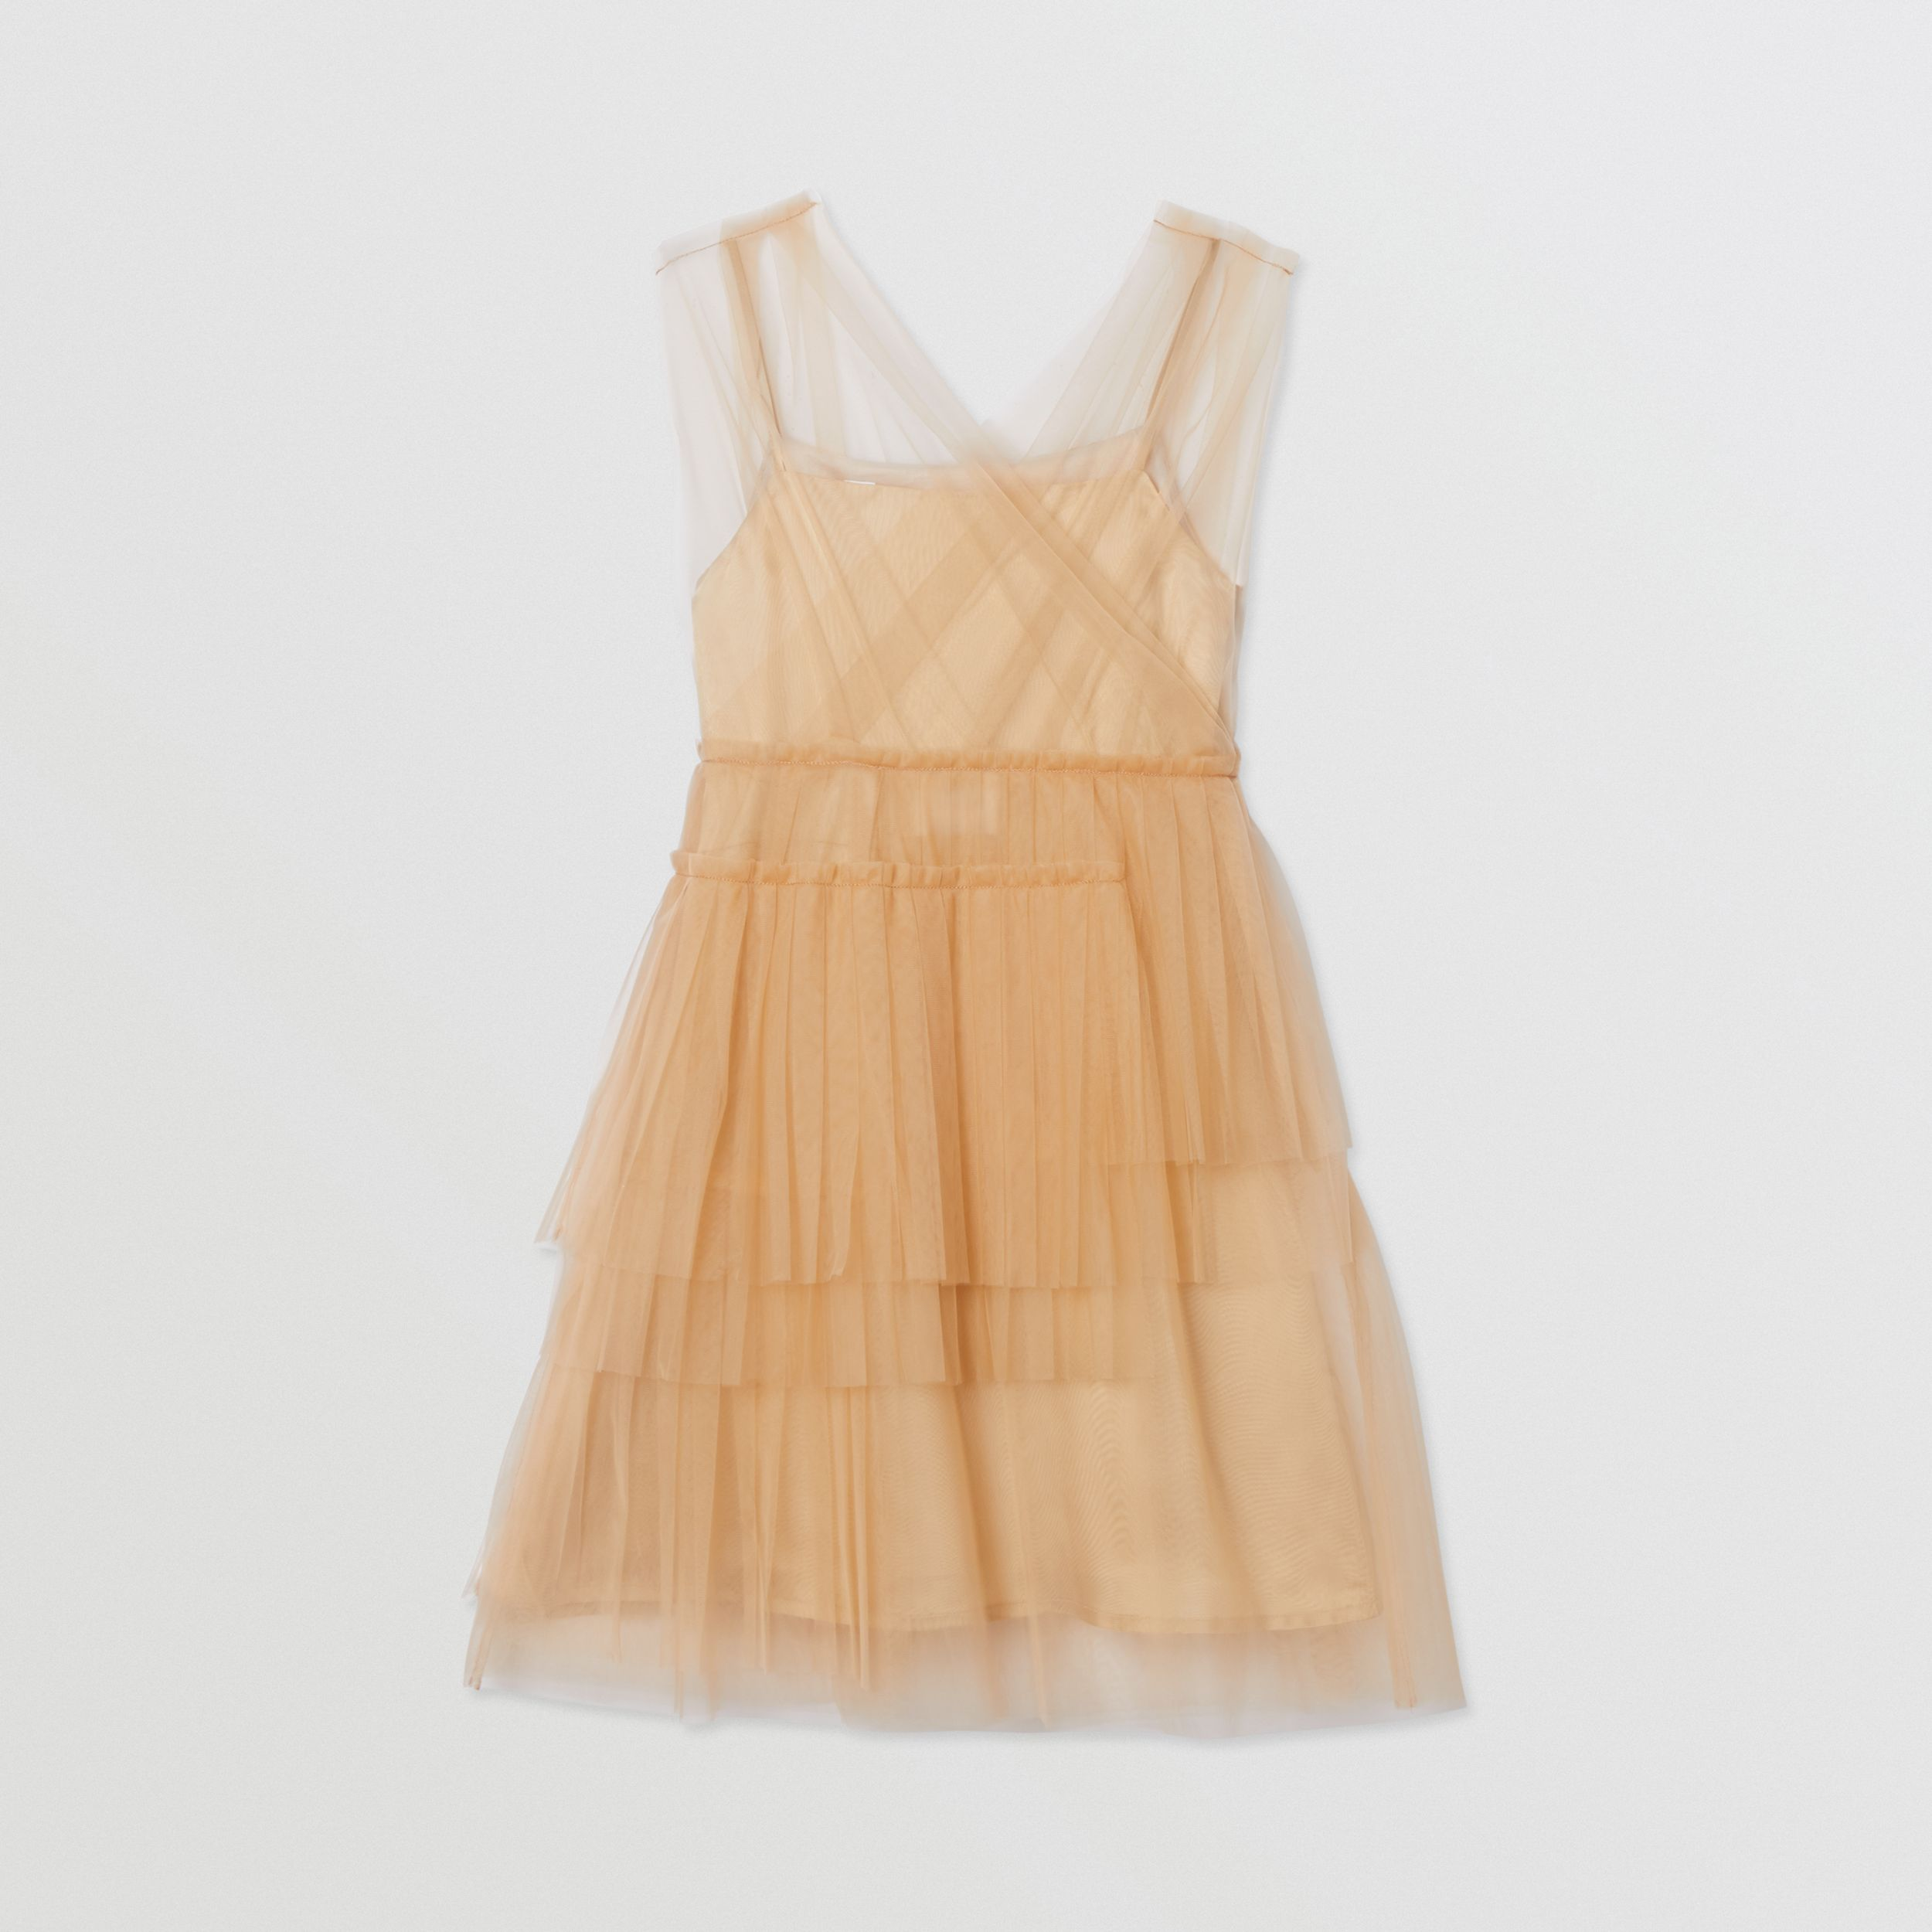 Tulle Tiered Dress in Oyster Beige | Burberry - 4